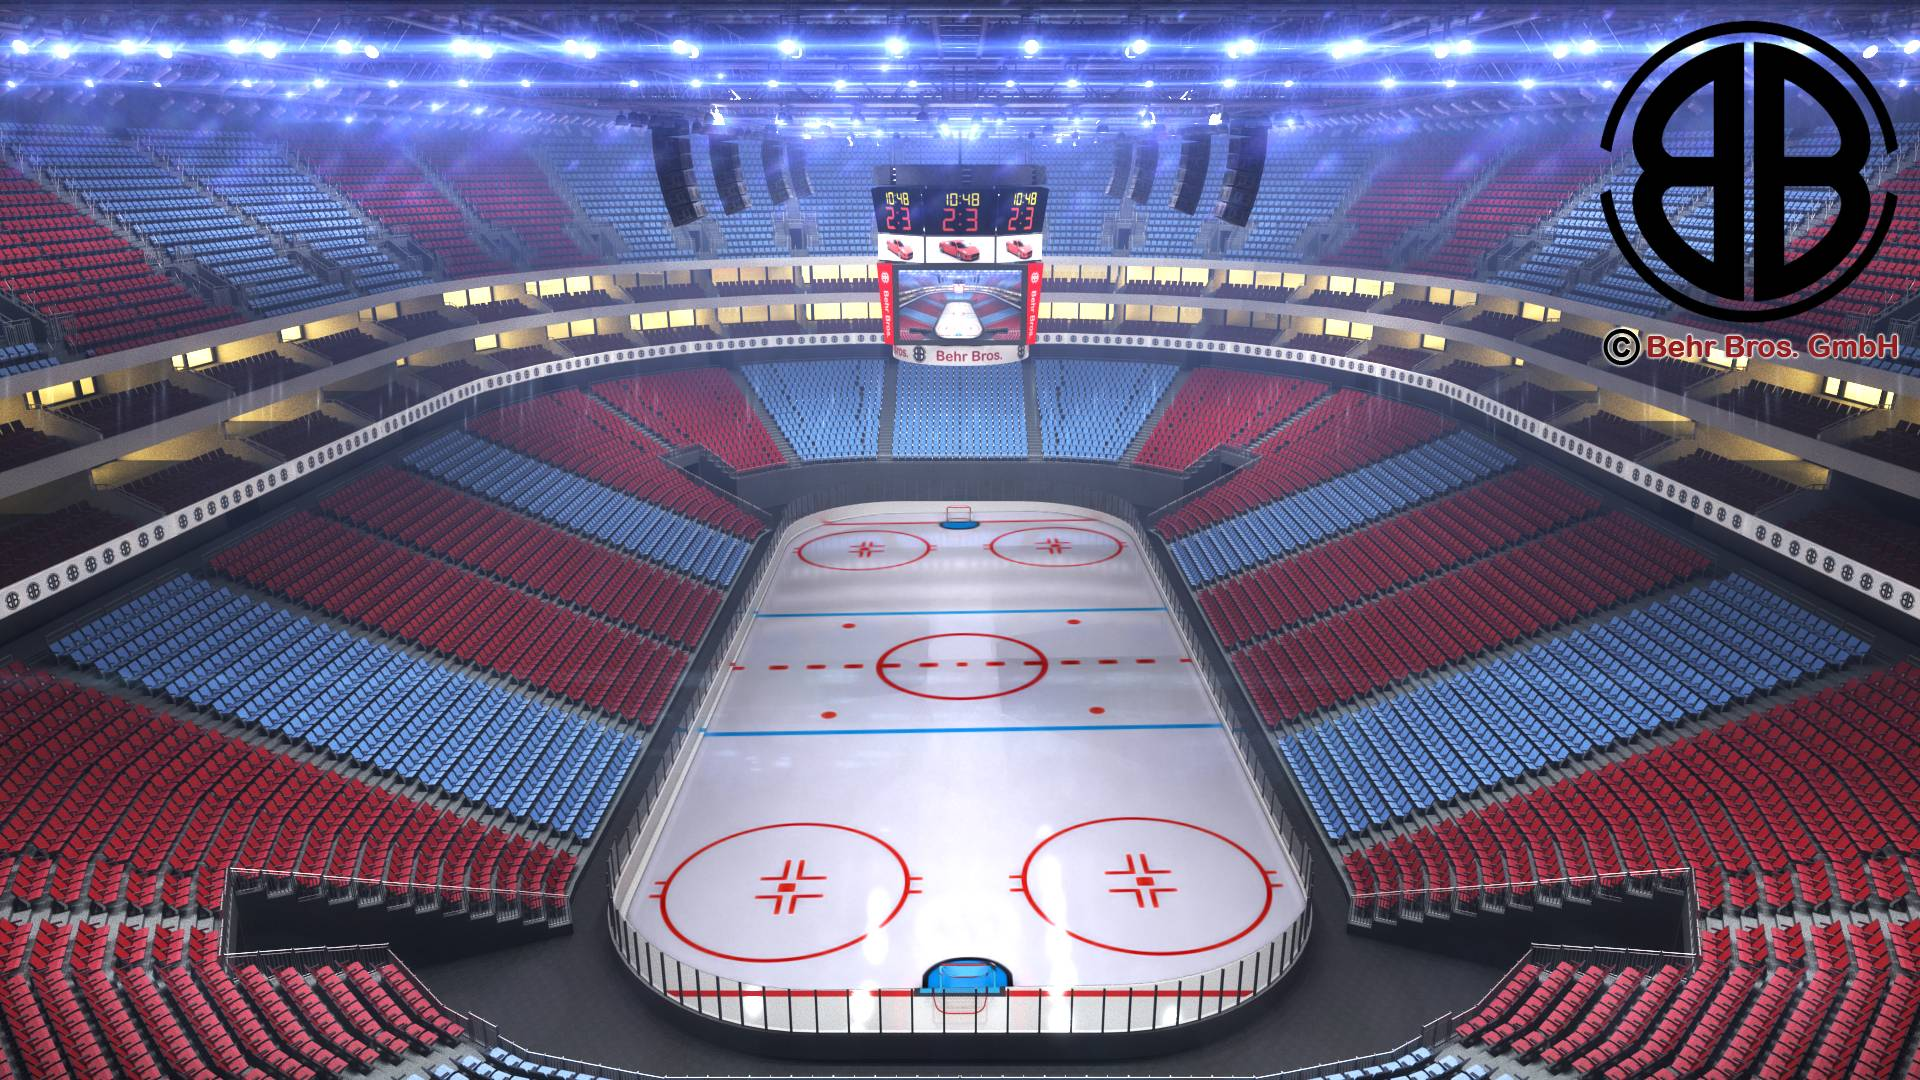 ice hockey arena v2 3d model 3ds max fbx c4d lwo ma mb obj 251652